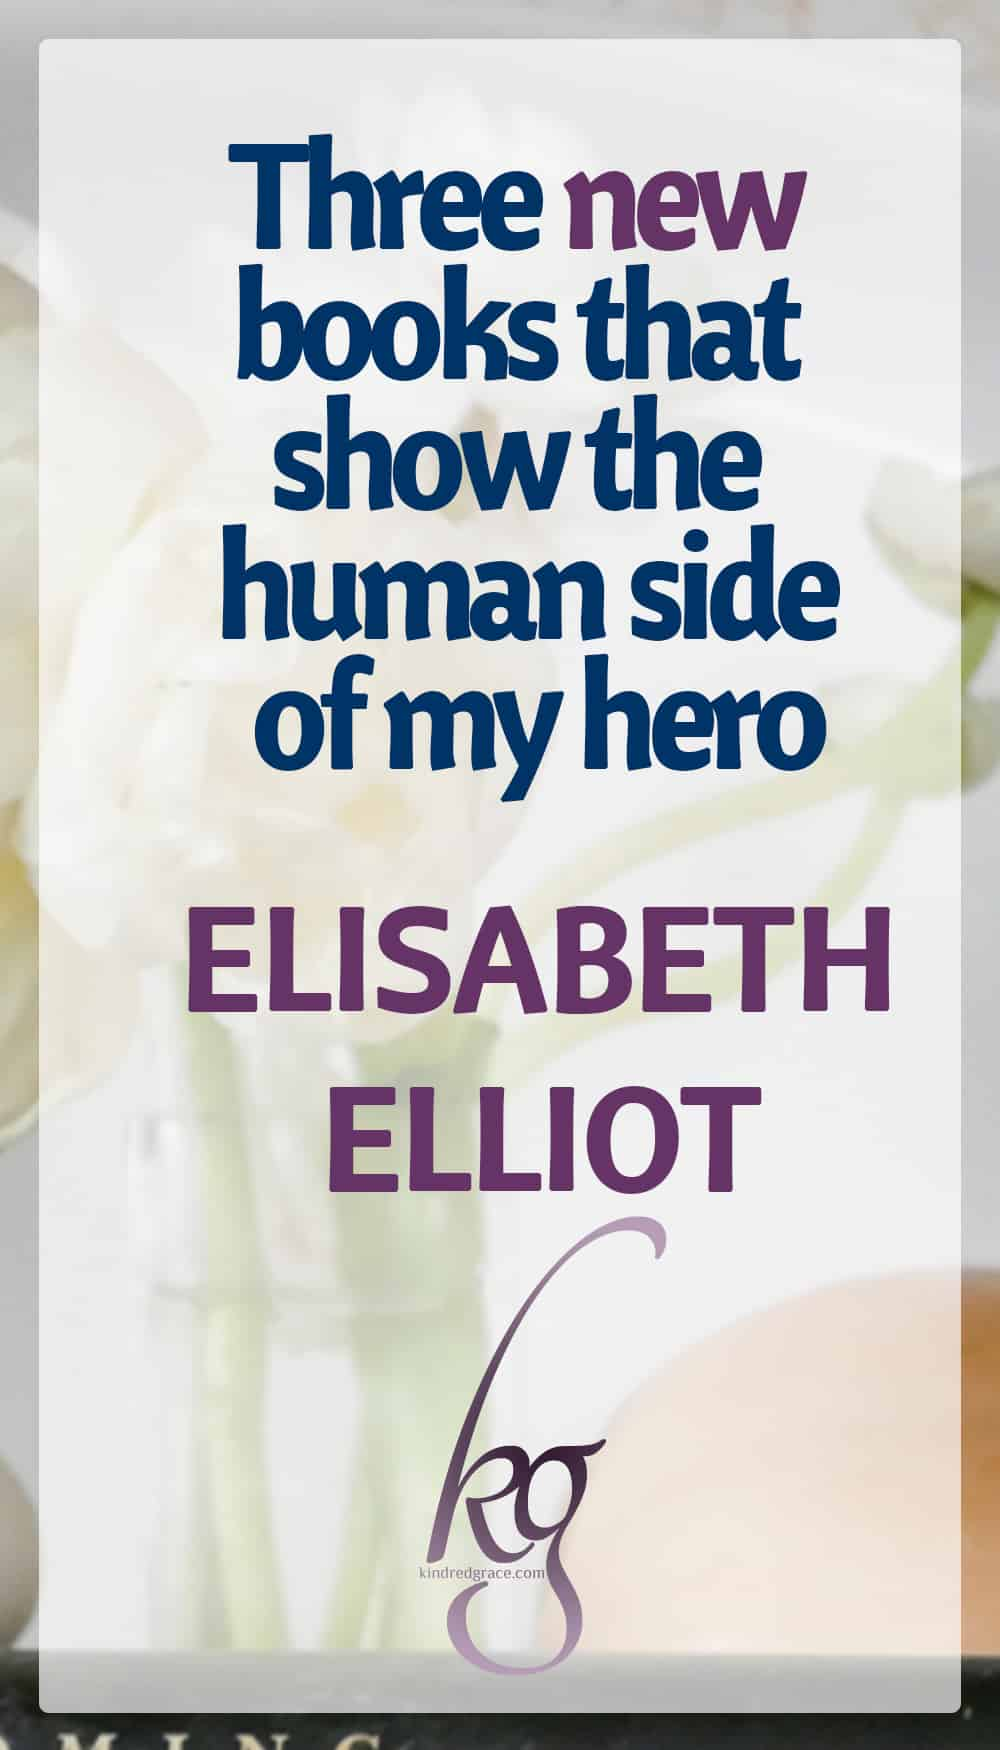 As writer who tends to tackle sorrow, loss, and hope, I keep discovering how Elisabeth Elliot's thoughts have cropped up unconsciously in my own work. No wonder I leaped at the chance to review her three newest books. One distilled the essence of all her books into a perfectly simple introduction. The other two introduced me to the very human side of my hero in a way that only grew my faith. via @KindredGrace